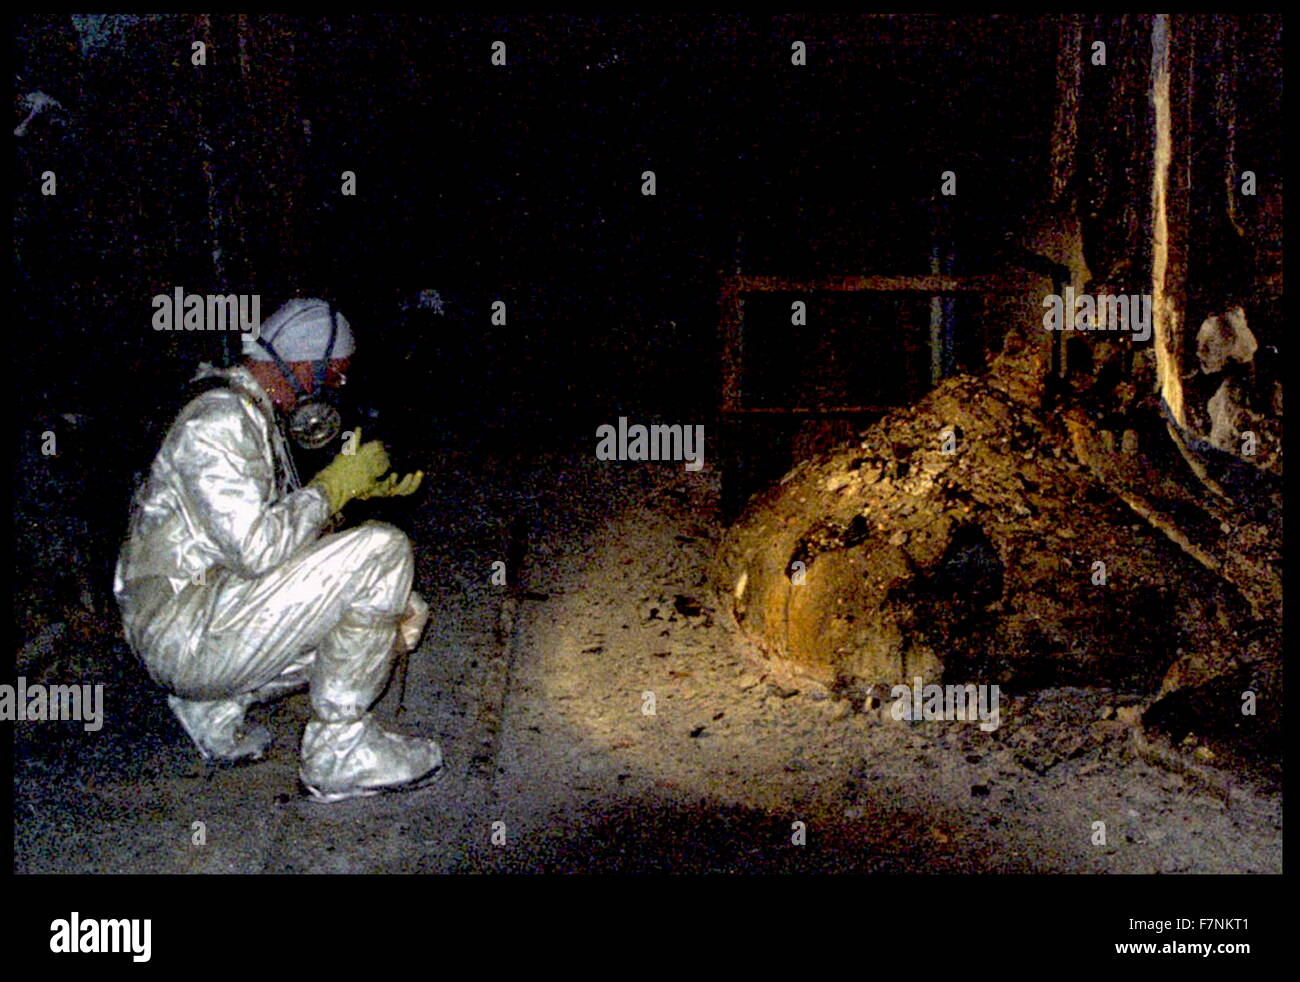 The Elephants Foot of the Chernobyl disaster. - Stock Image